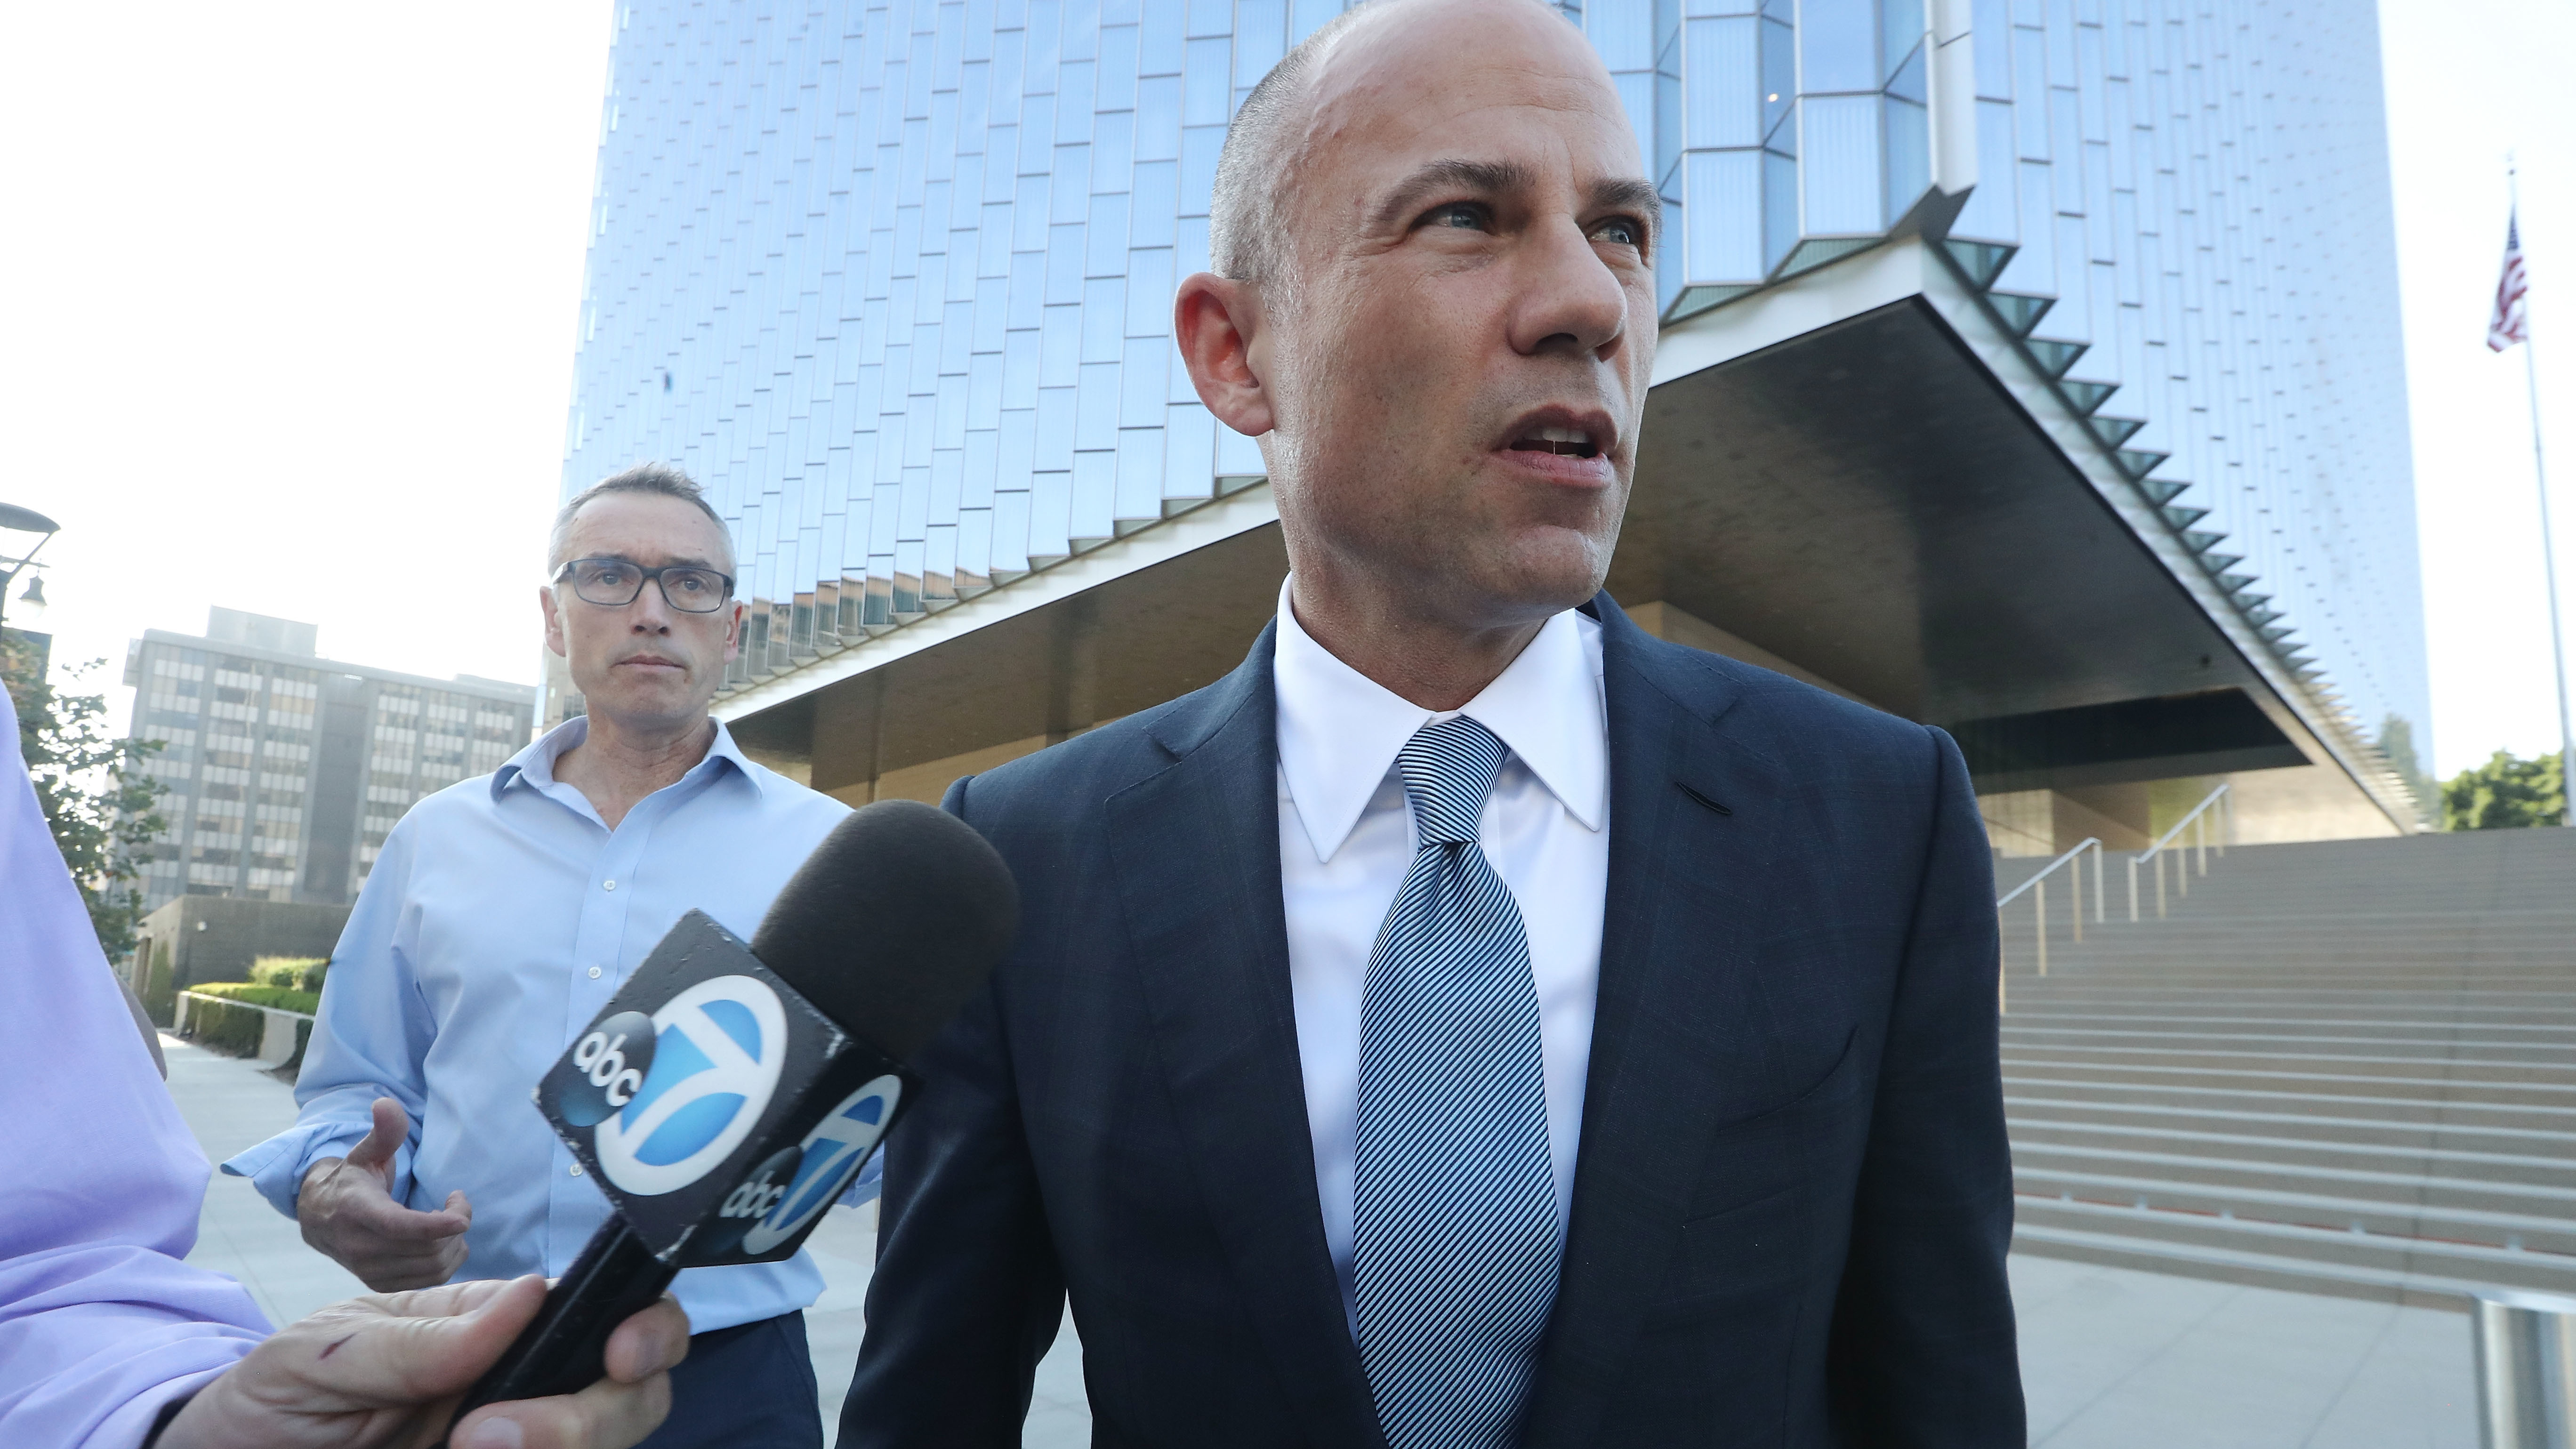 npr.org - Carrie Johnson - Attorney Michael Avenatti, Sometime Scourge To Trump, Now Faces Federal Charges